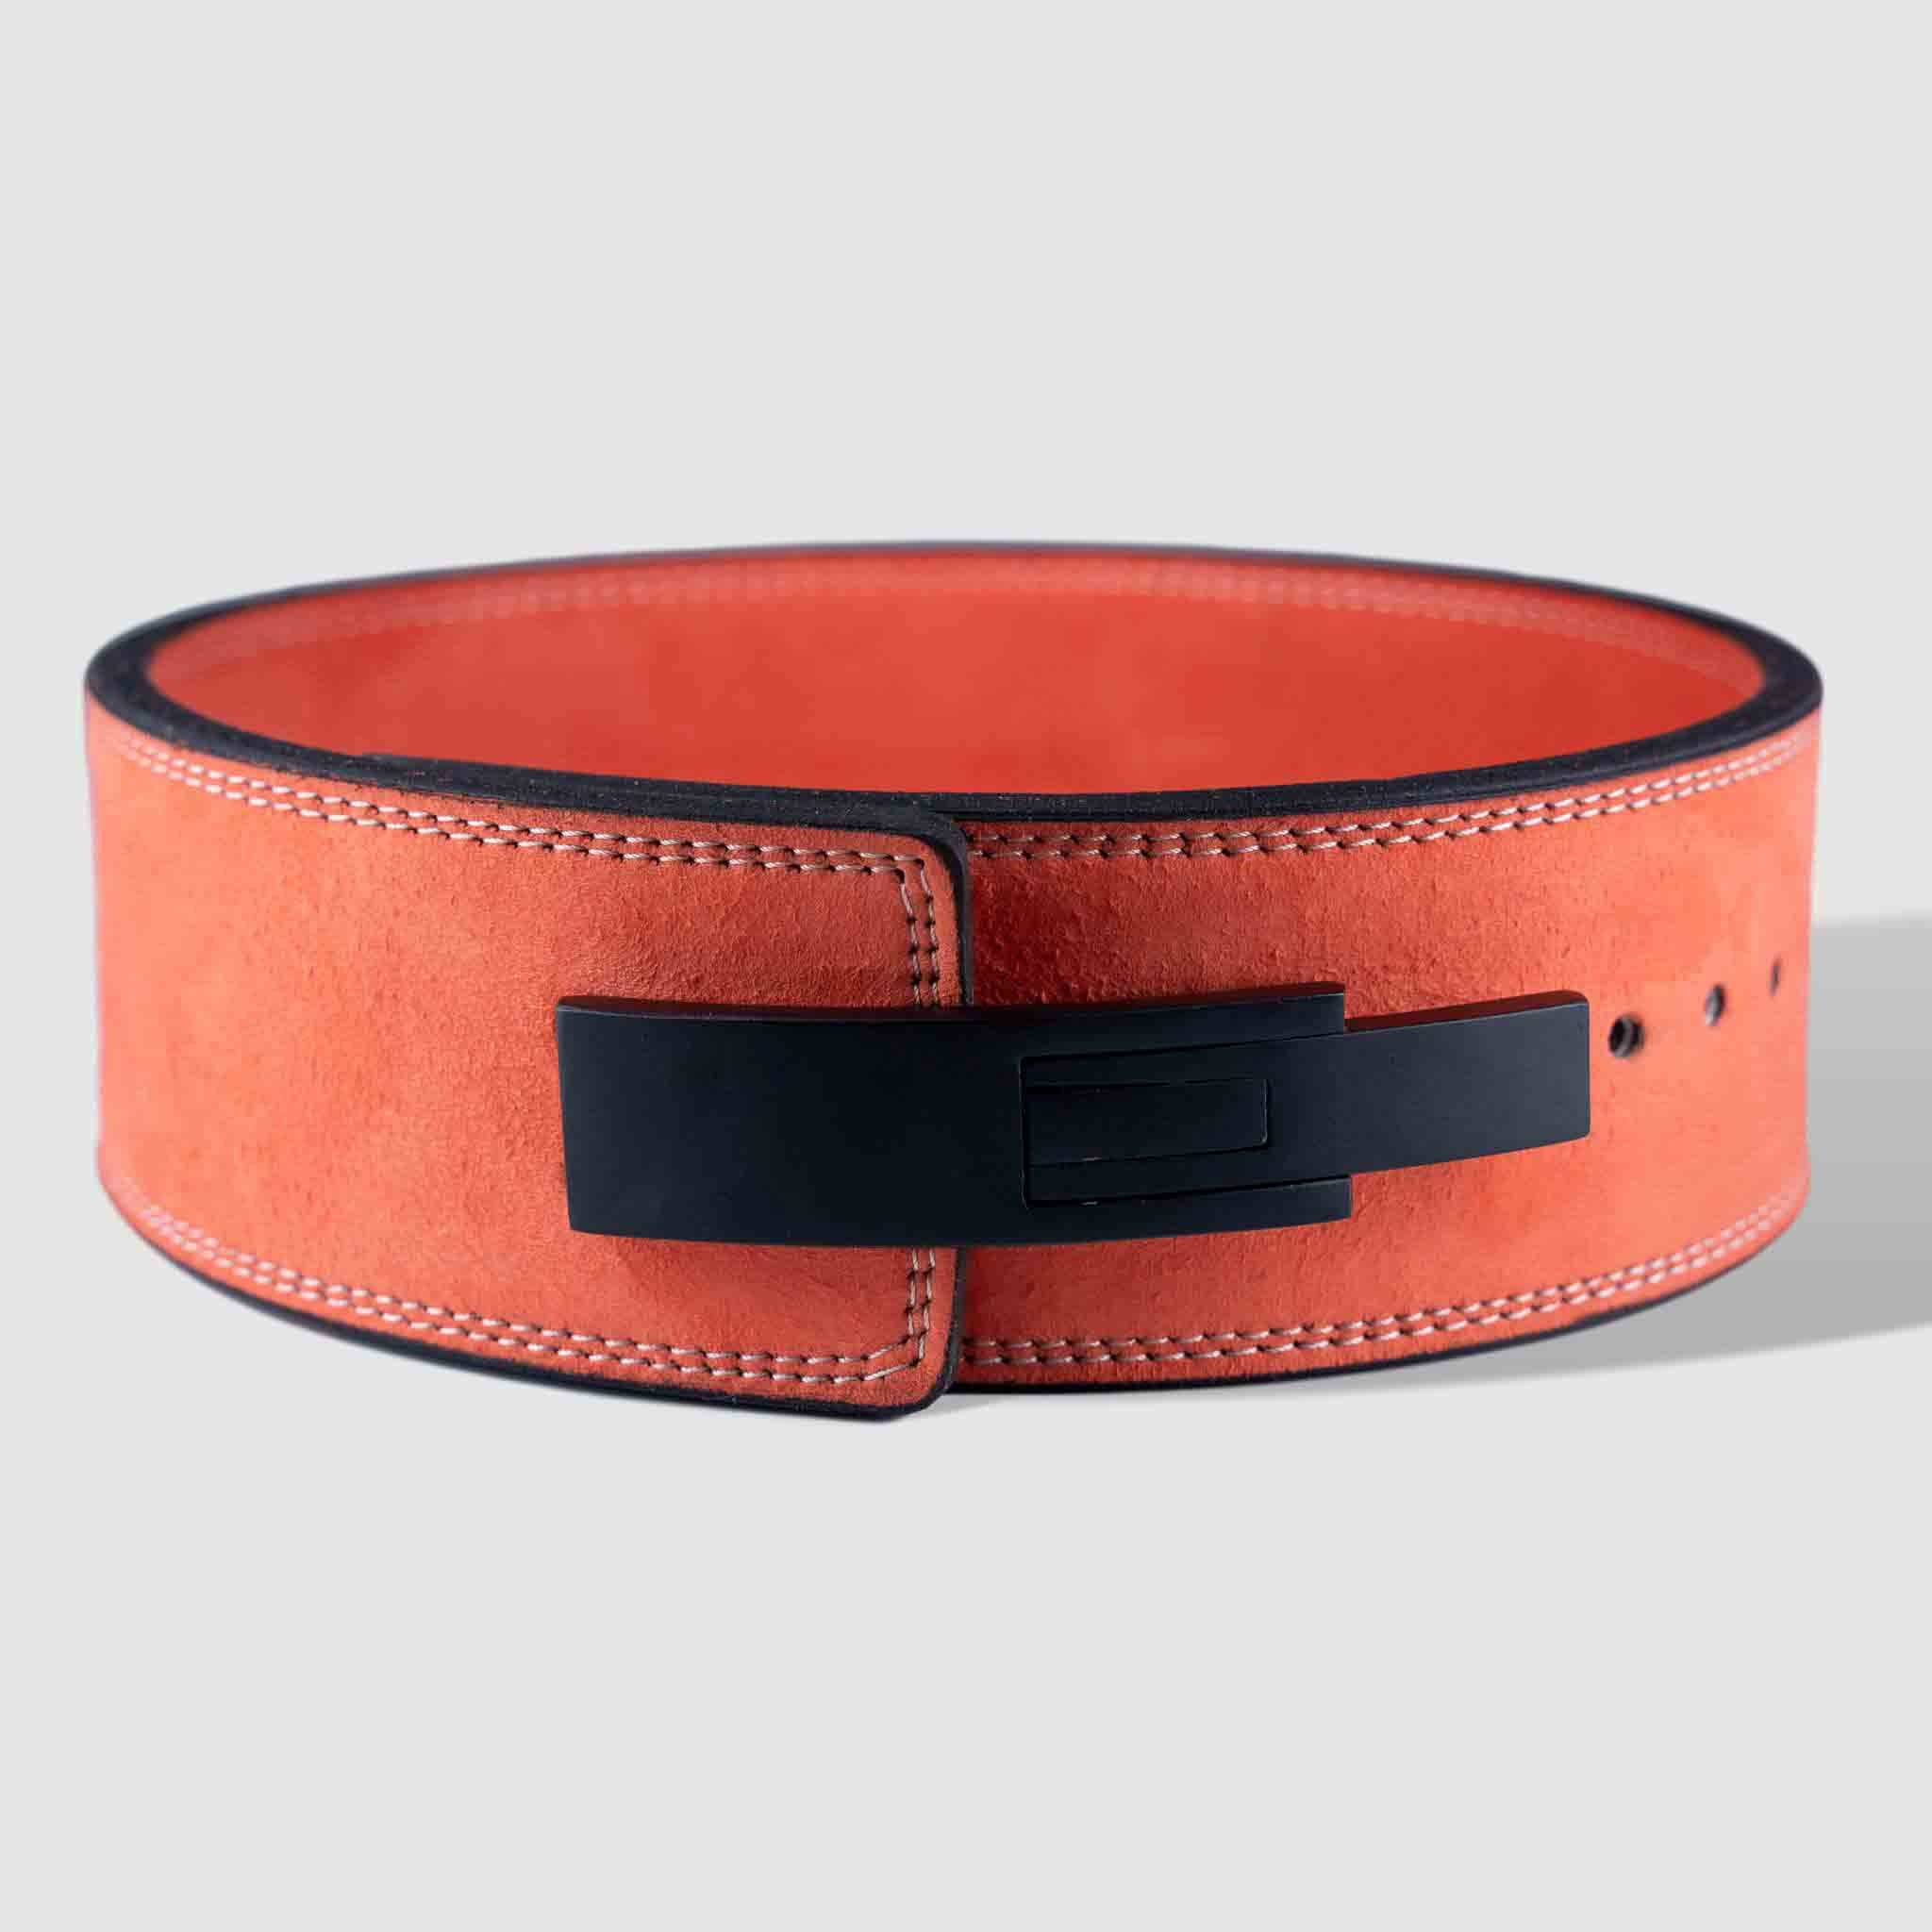 Strength Shop 10mm Lever Belt - IPF Approved - Burnt Orange **Ships on February 5th** - Strength Shop USA